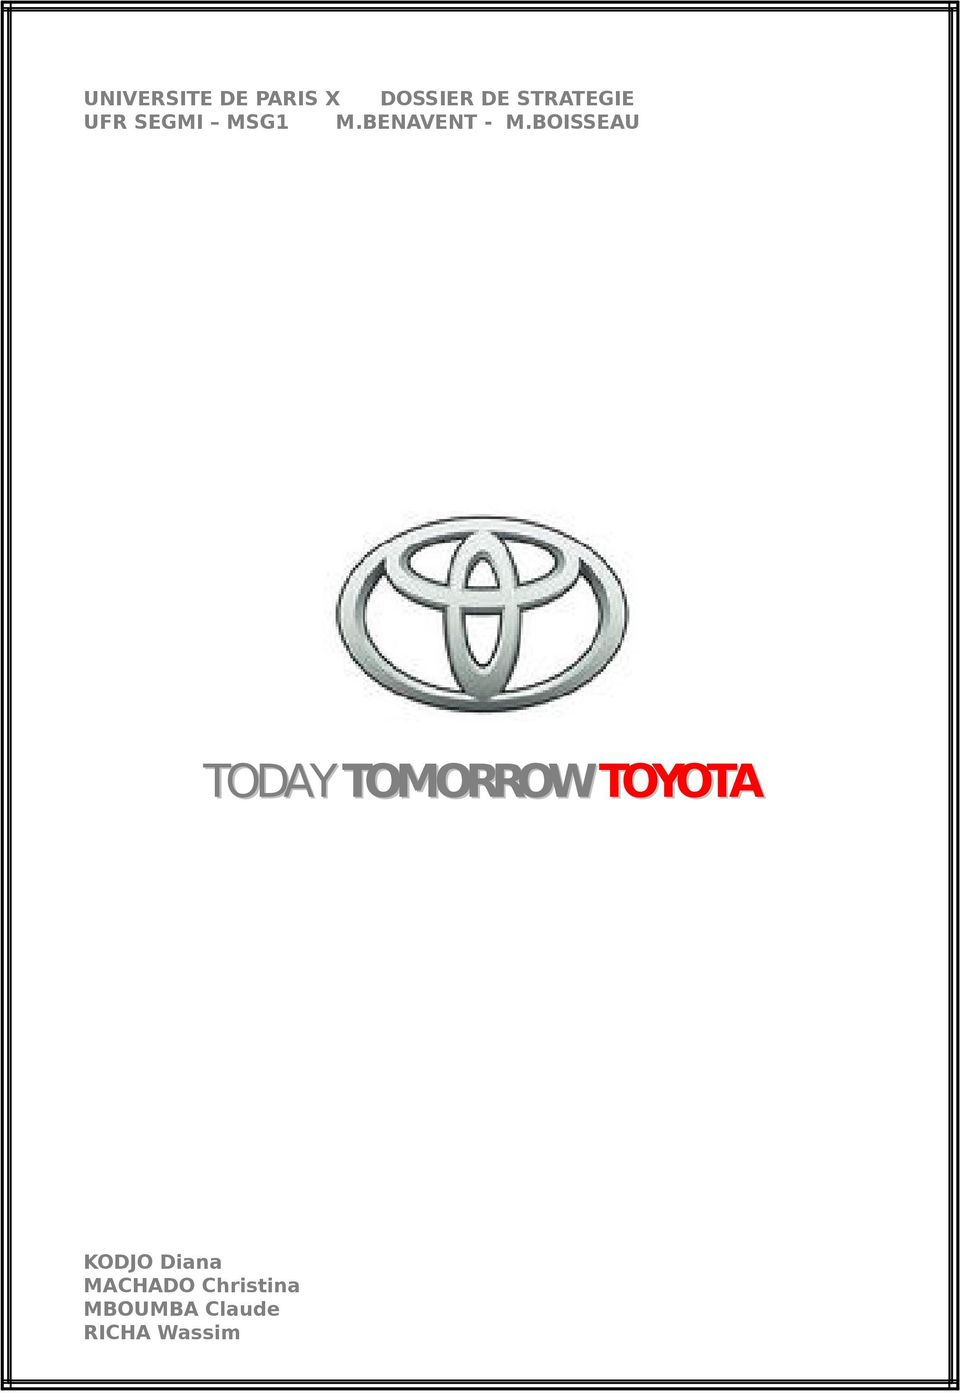 BOISSEAU TODAY TOMORROW TOYOTA KODJO